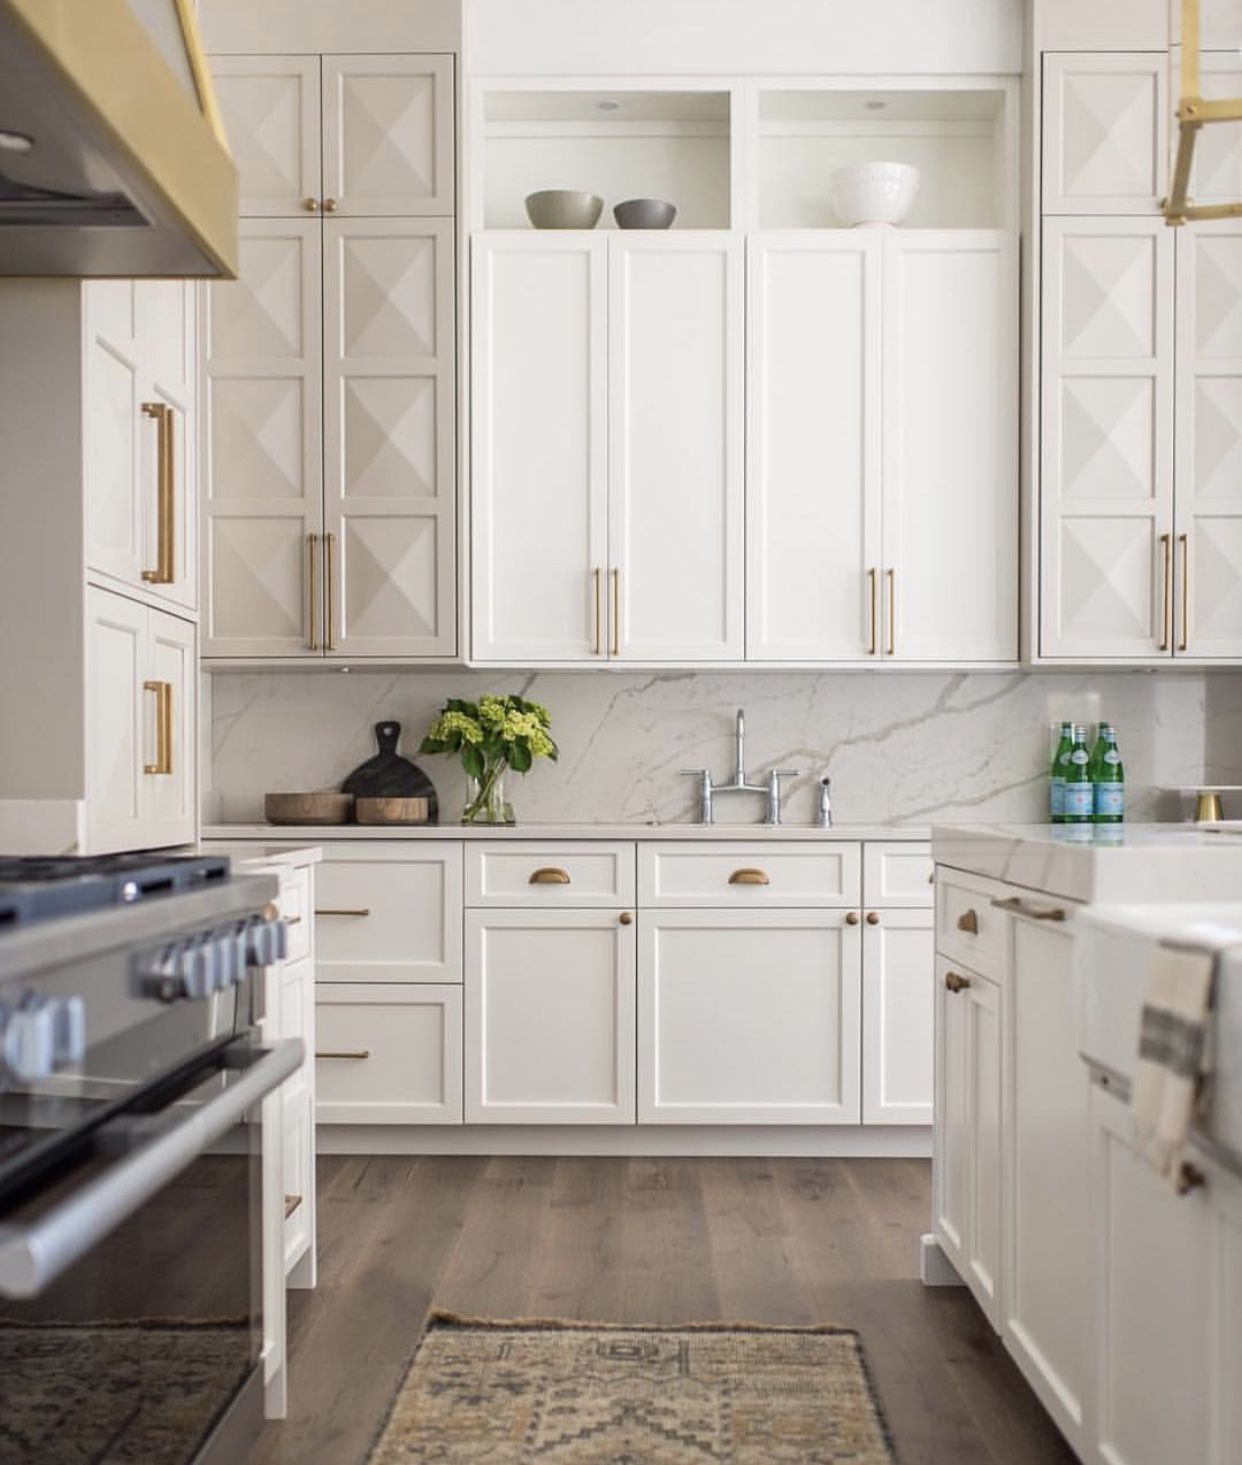 opening above cabinets | 17 a charleston kitchen | Pinterest | White ...